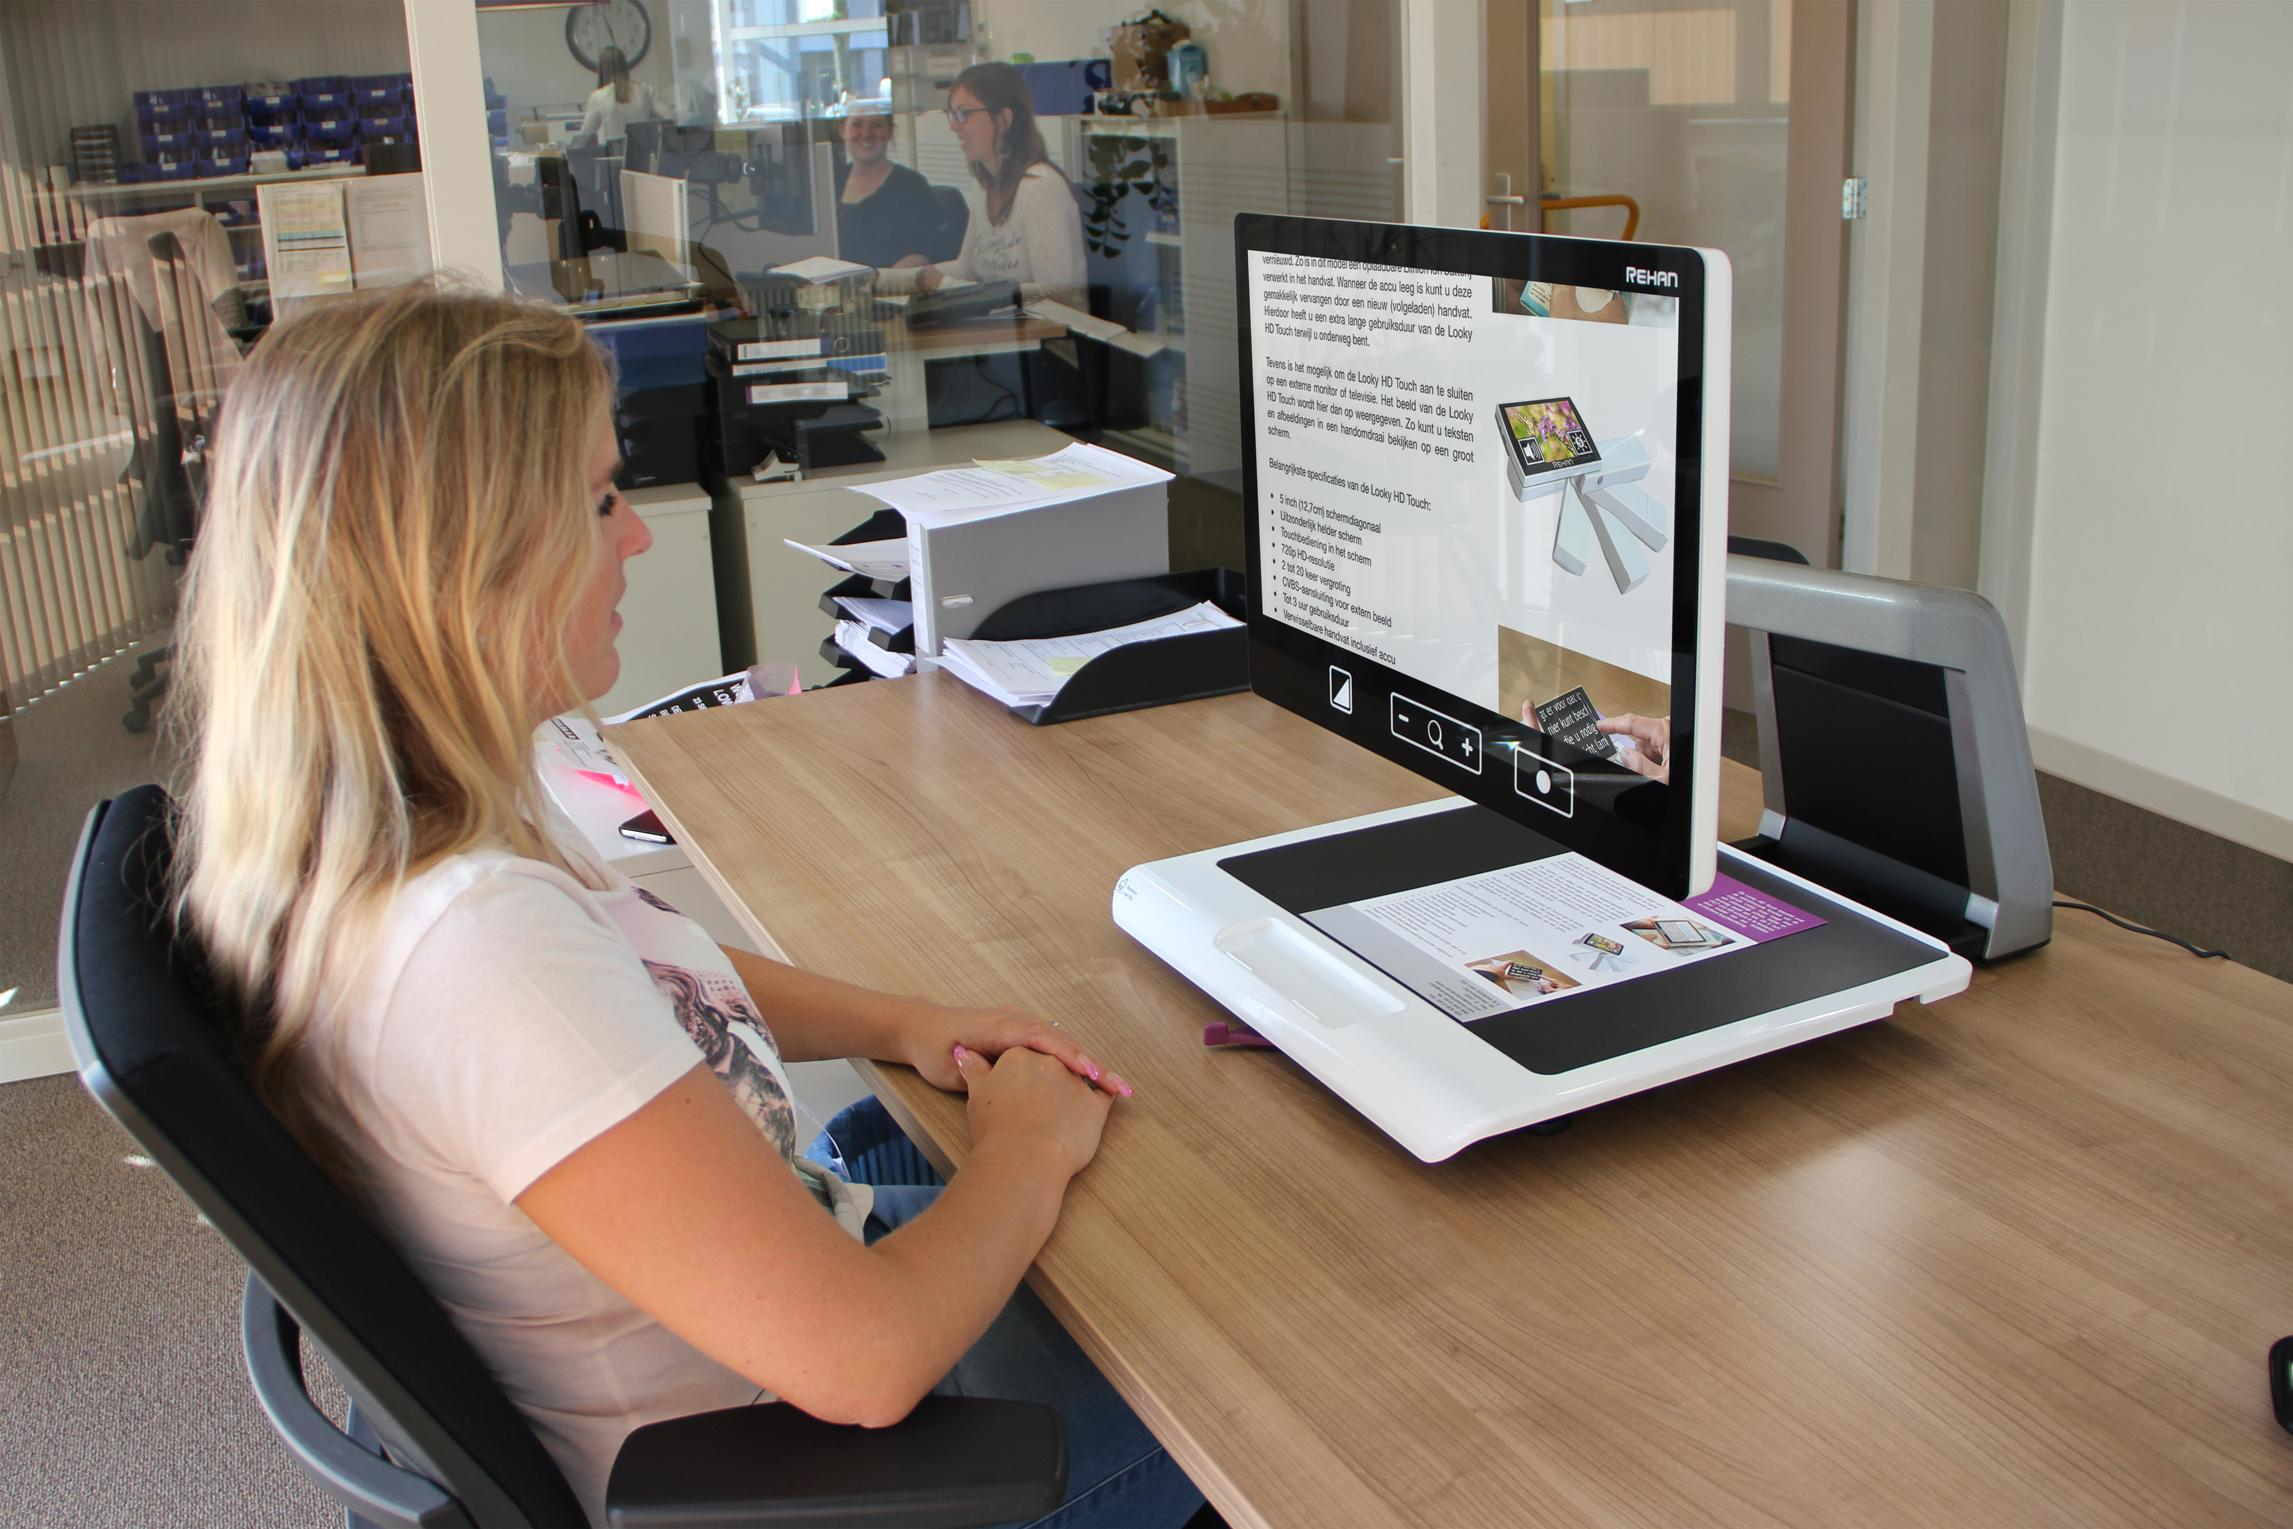 Acuity Full HD being used in a work setting at a desk